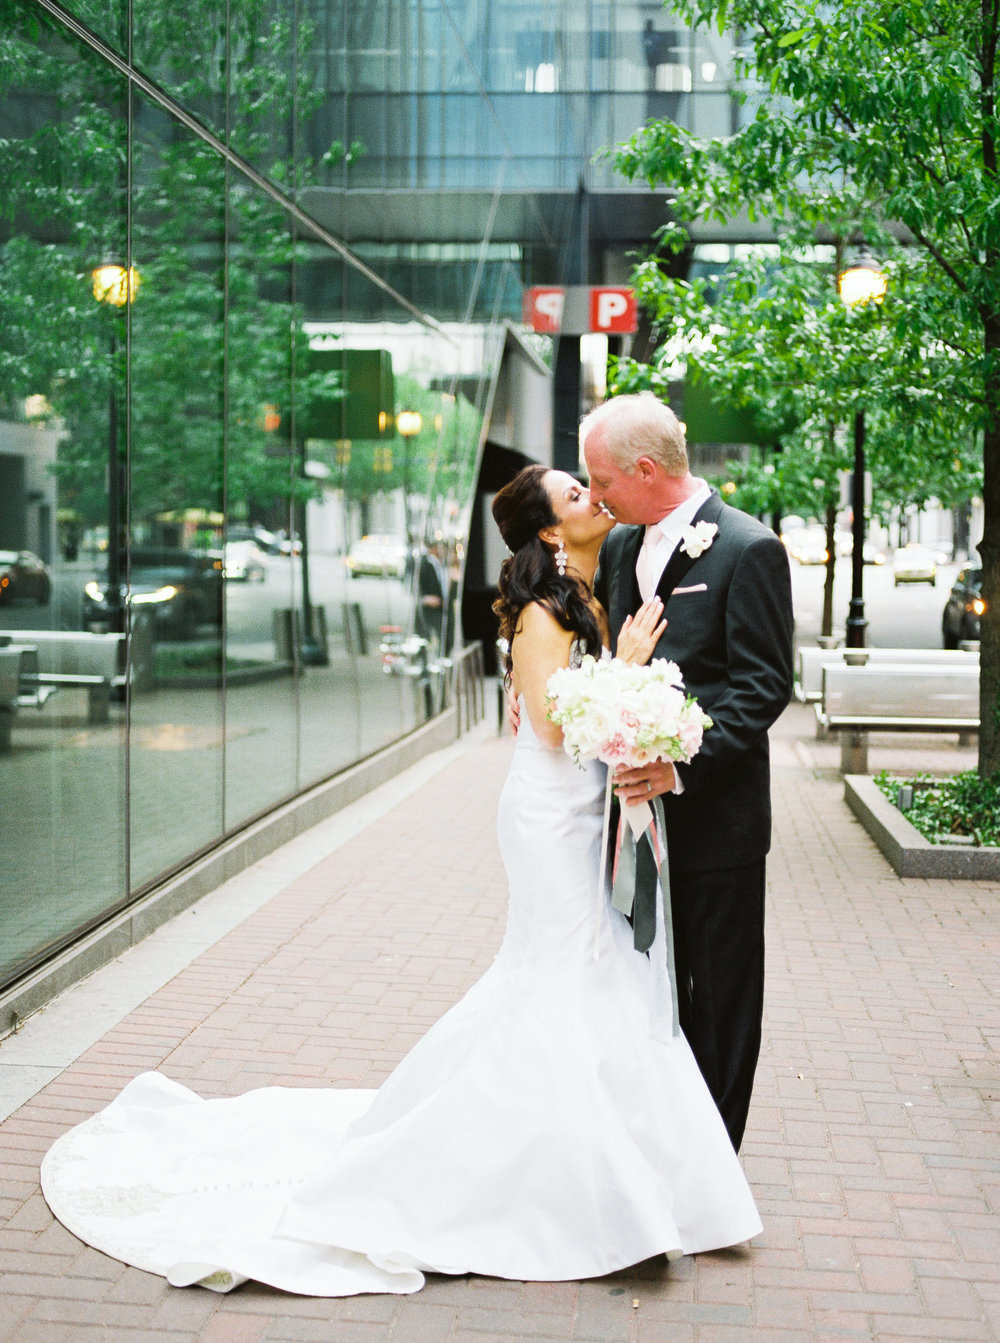 Ritz Carlton Urban Garden Wedding - The Graceful Host - Charlotte, NC Wedding